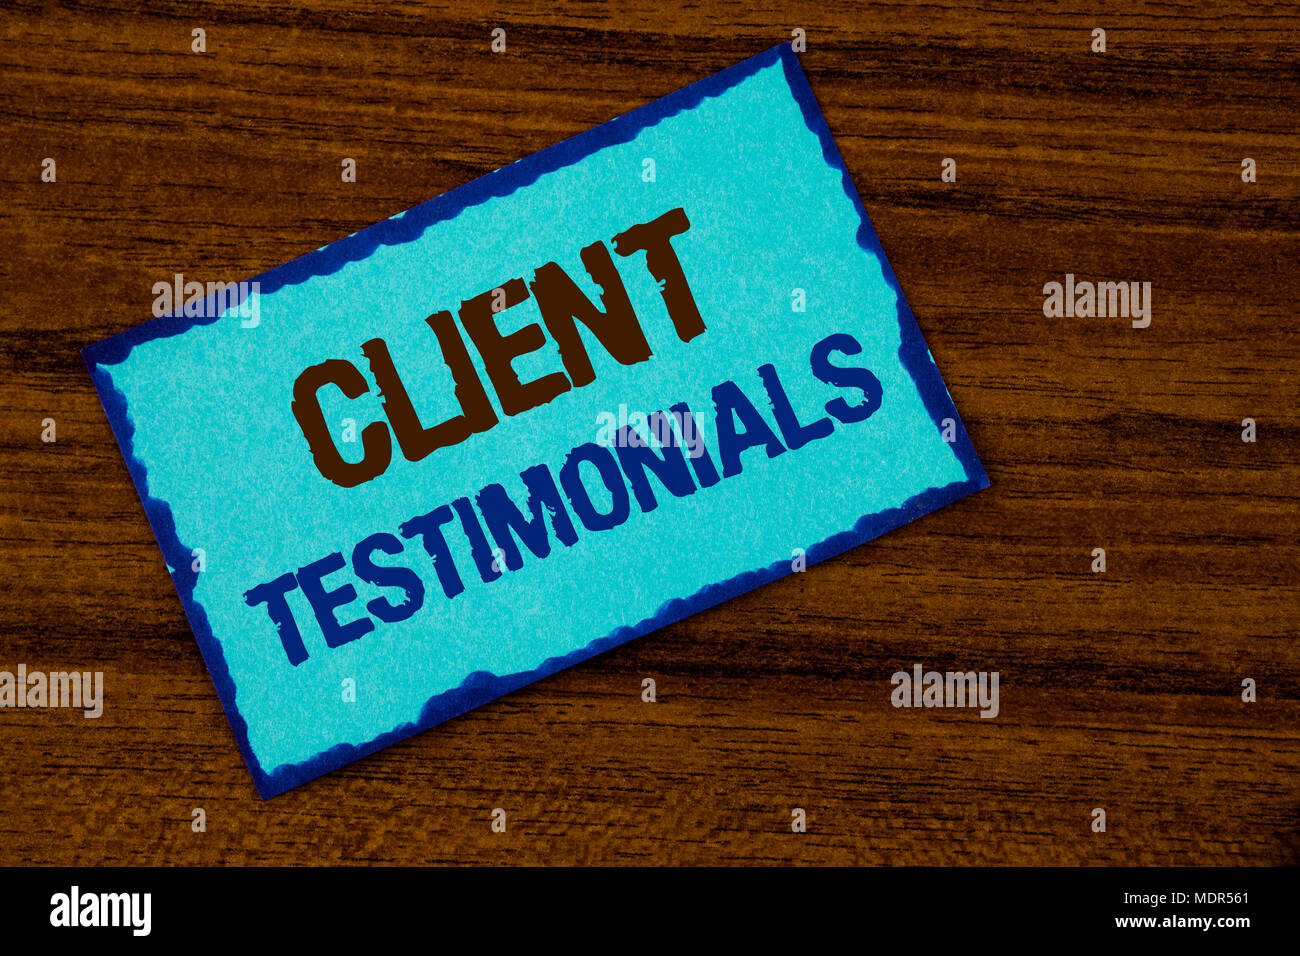 Text sign showing Client Testimonials  Conceptual photo Customer